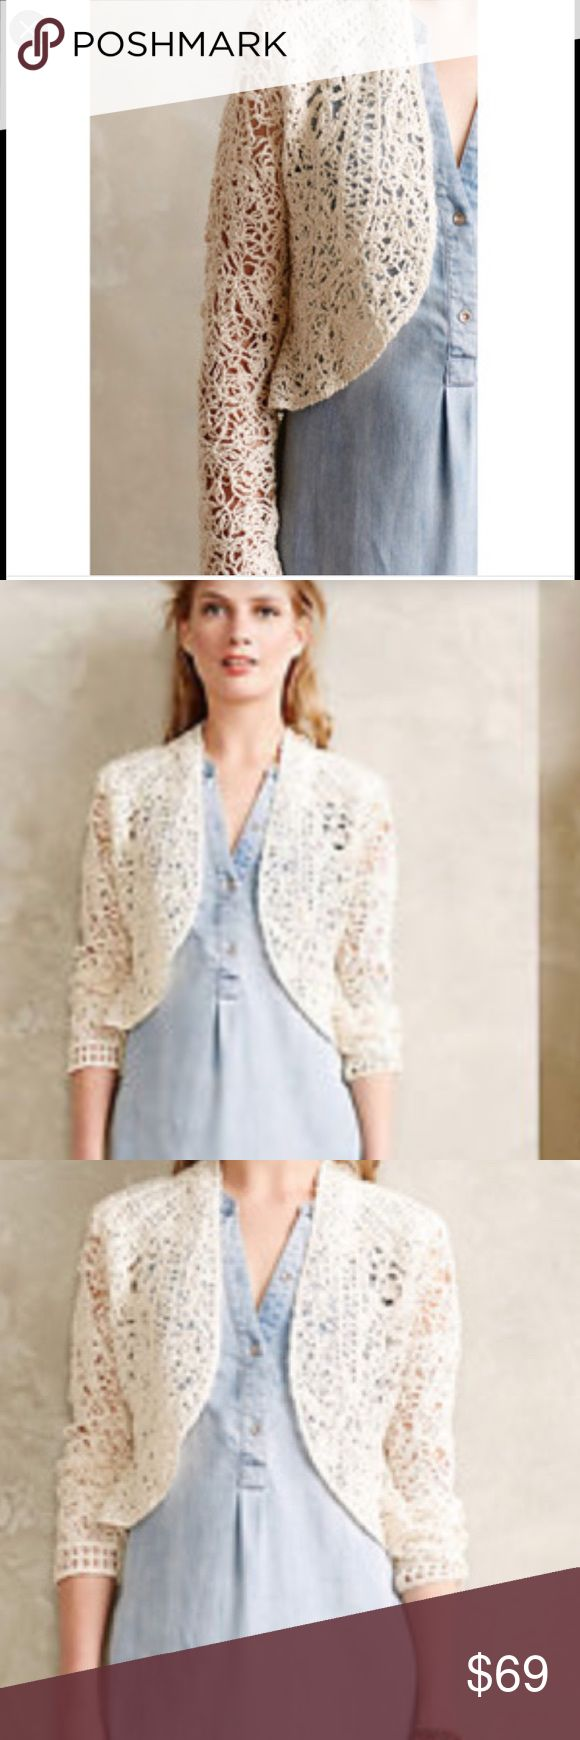 Anthropology Angel of the North Cardigan/shrug Intricate, open-weave needlework Anthropology (Angel of the North) adds a romantic finishing touch to boho summer dresses. By Angel of the North. Cotton. Open front. Intentional crochet with holes that are bigger and smaller throughout. Petite sizing. ivory color. Anthropologie Sweaters Cardigans